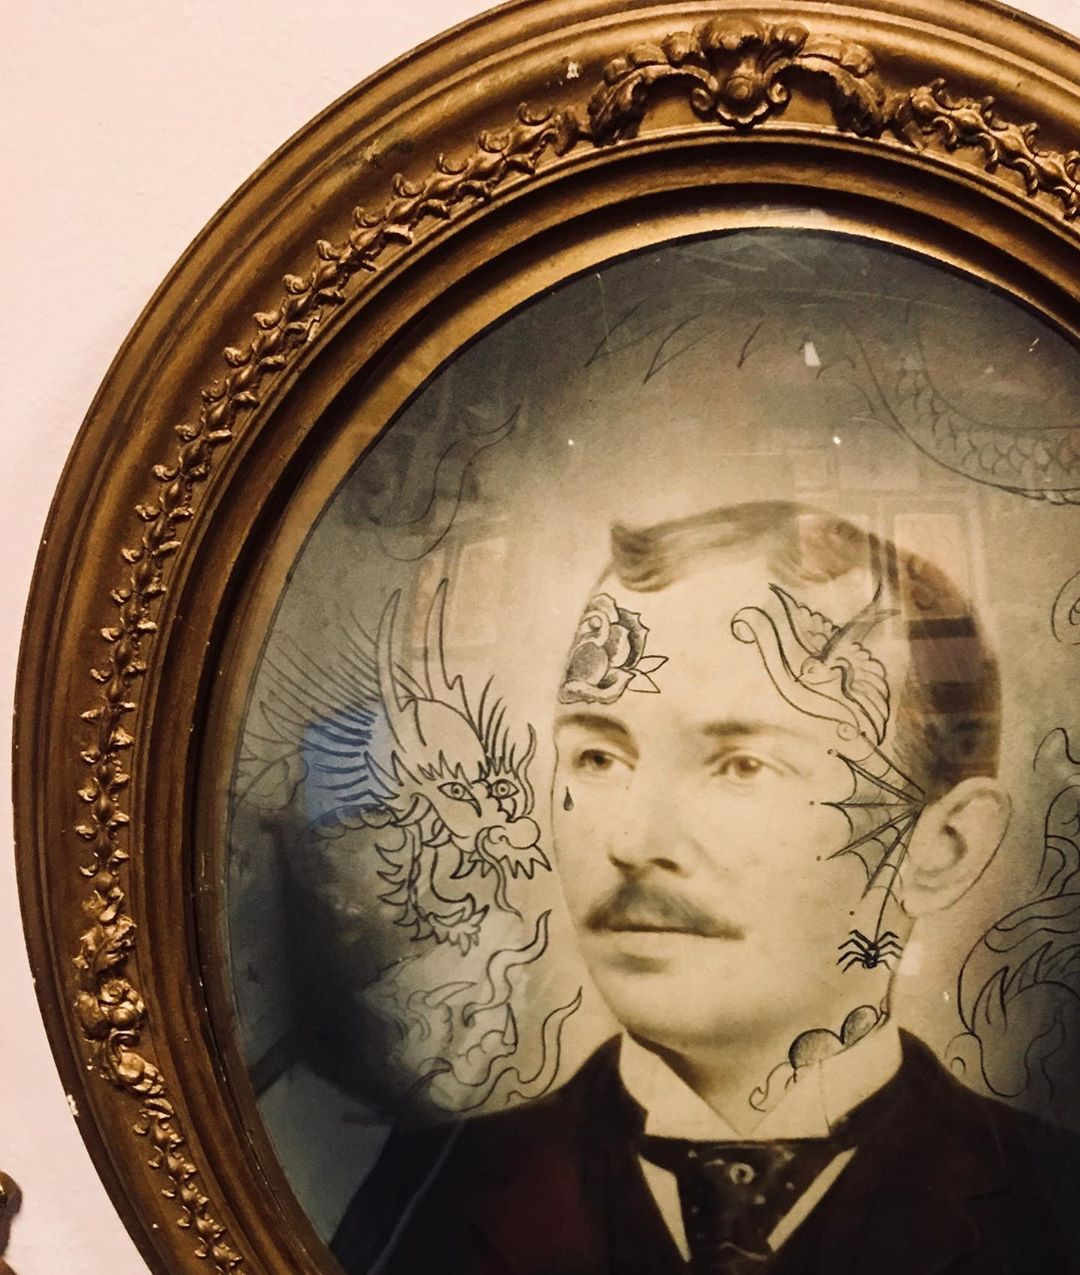 Oldey timey #tattooshop #tattooclassic #traditionaltattoos #makingart #grandpatattoo #vintageframe #vintagephoto #oldglass #pencildrawing #tattoobliss